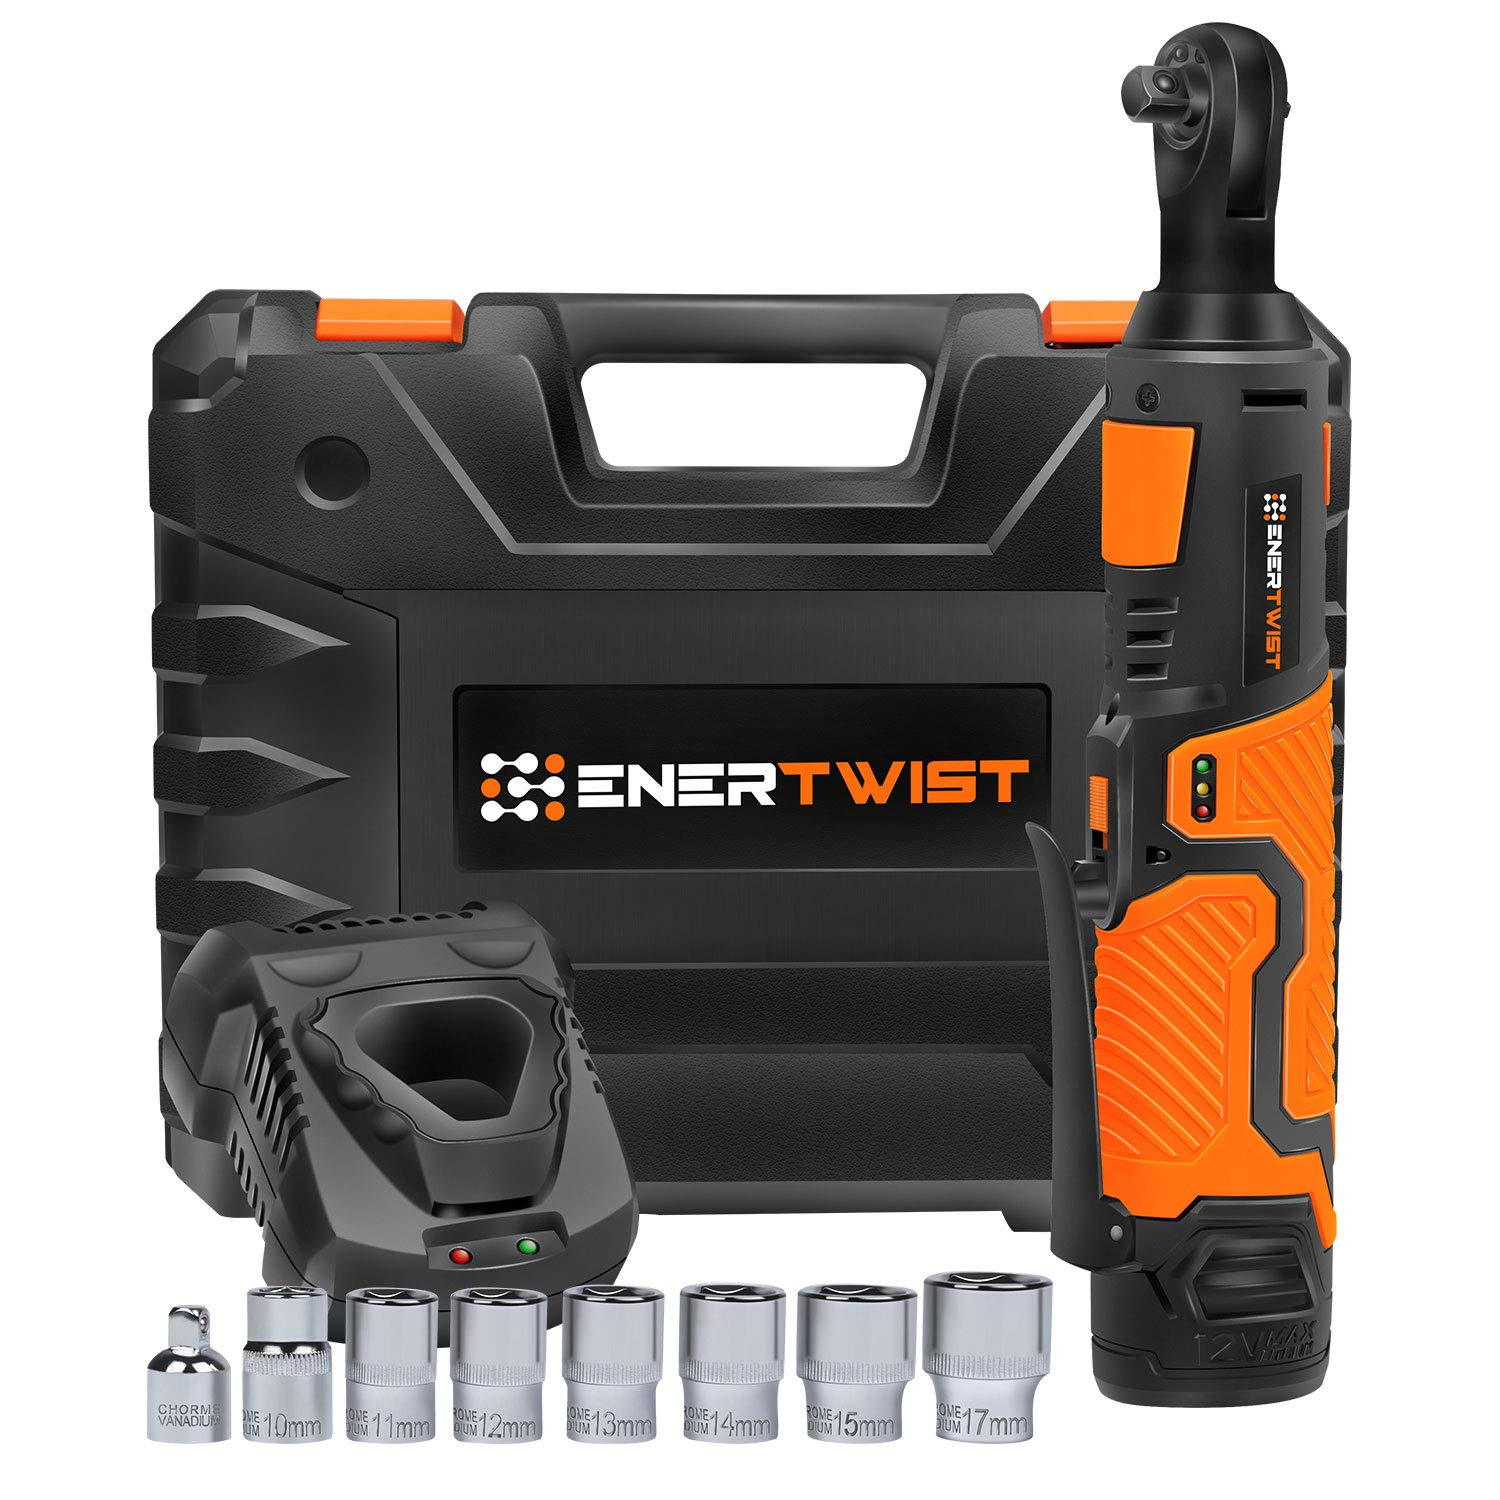 EnerTwist Cordless Electric Ratchet Wrench 3/8 Inch with 12V Lithium-ion Battery and Fast Charger Includes 7-Piece 3/8'' Metric Sockets Kit and 1/4'' Adaptor, ET-RW-12 by ENERTWIST (Image #1)